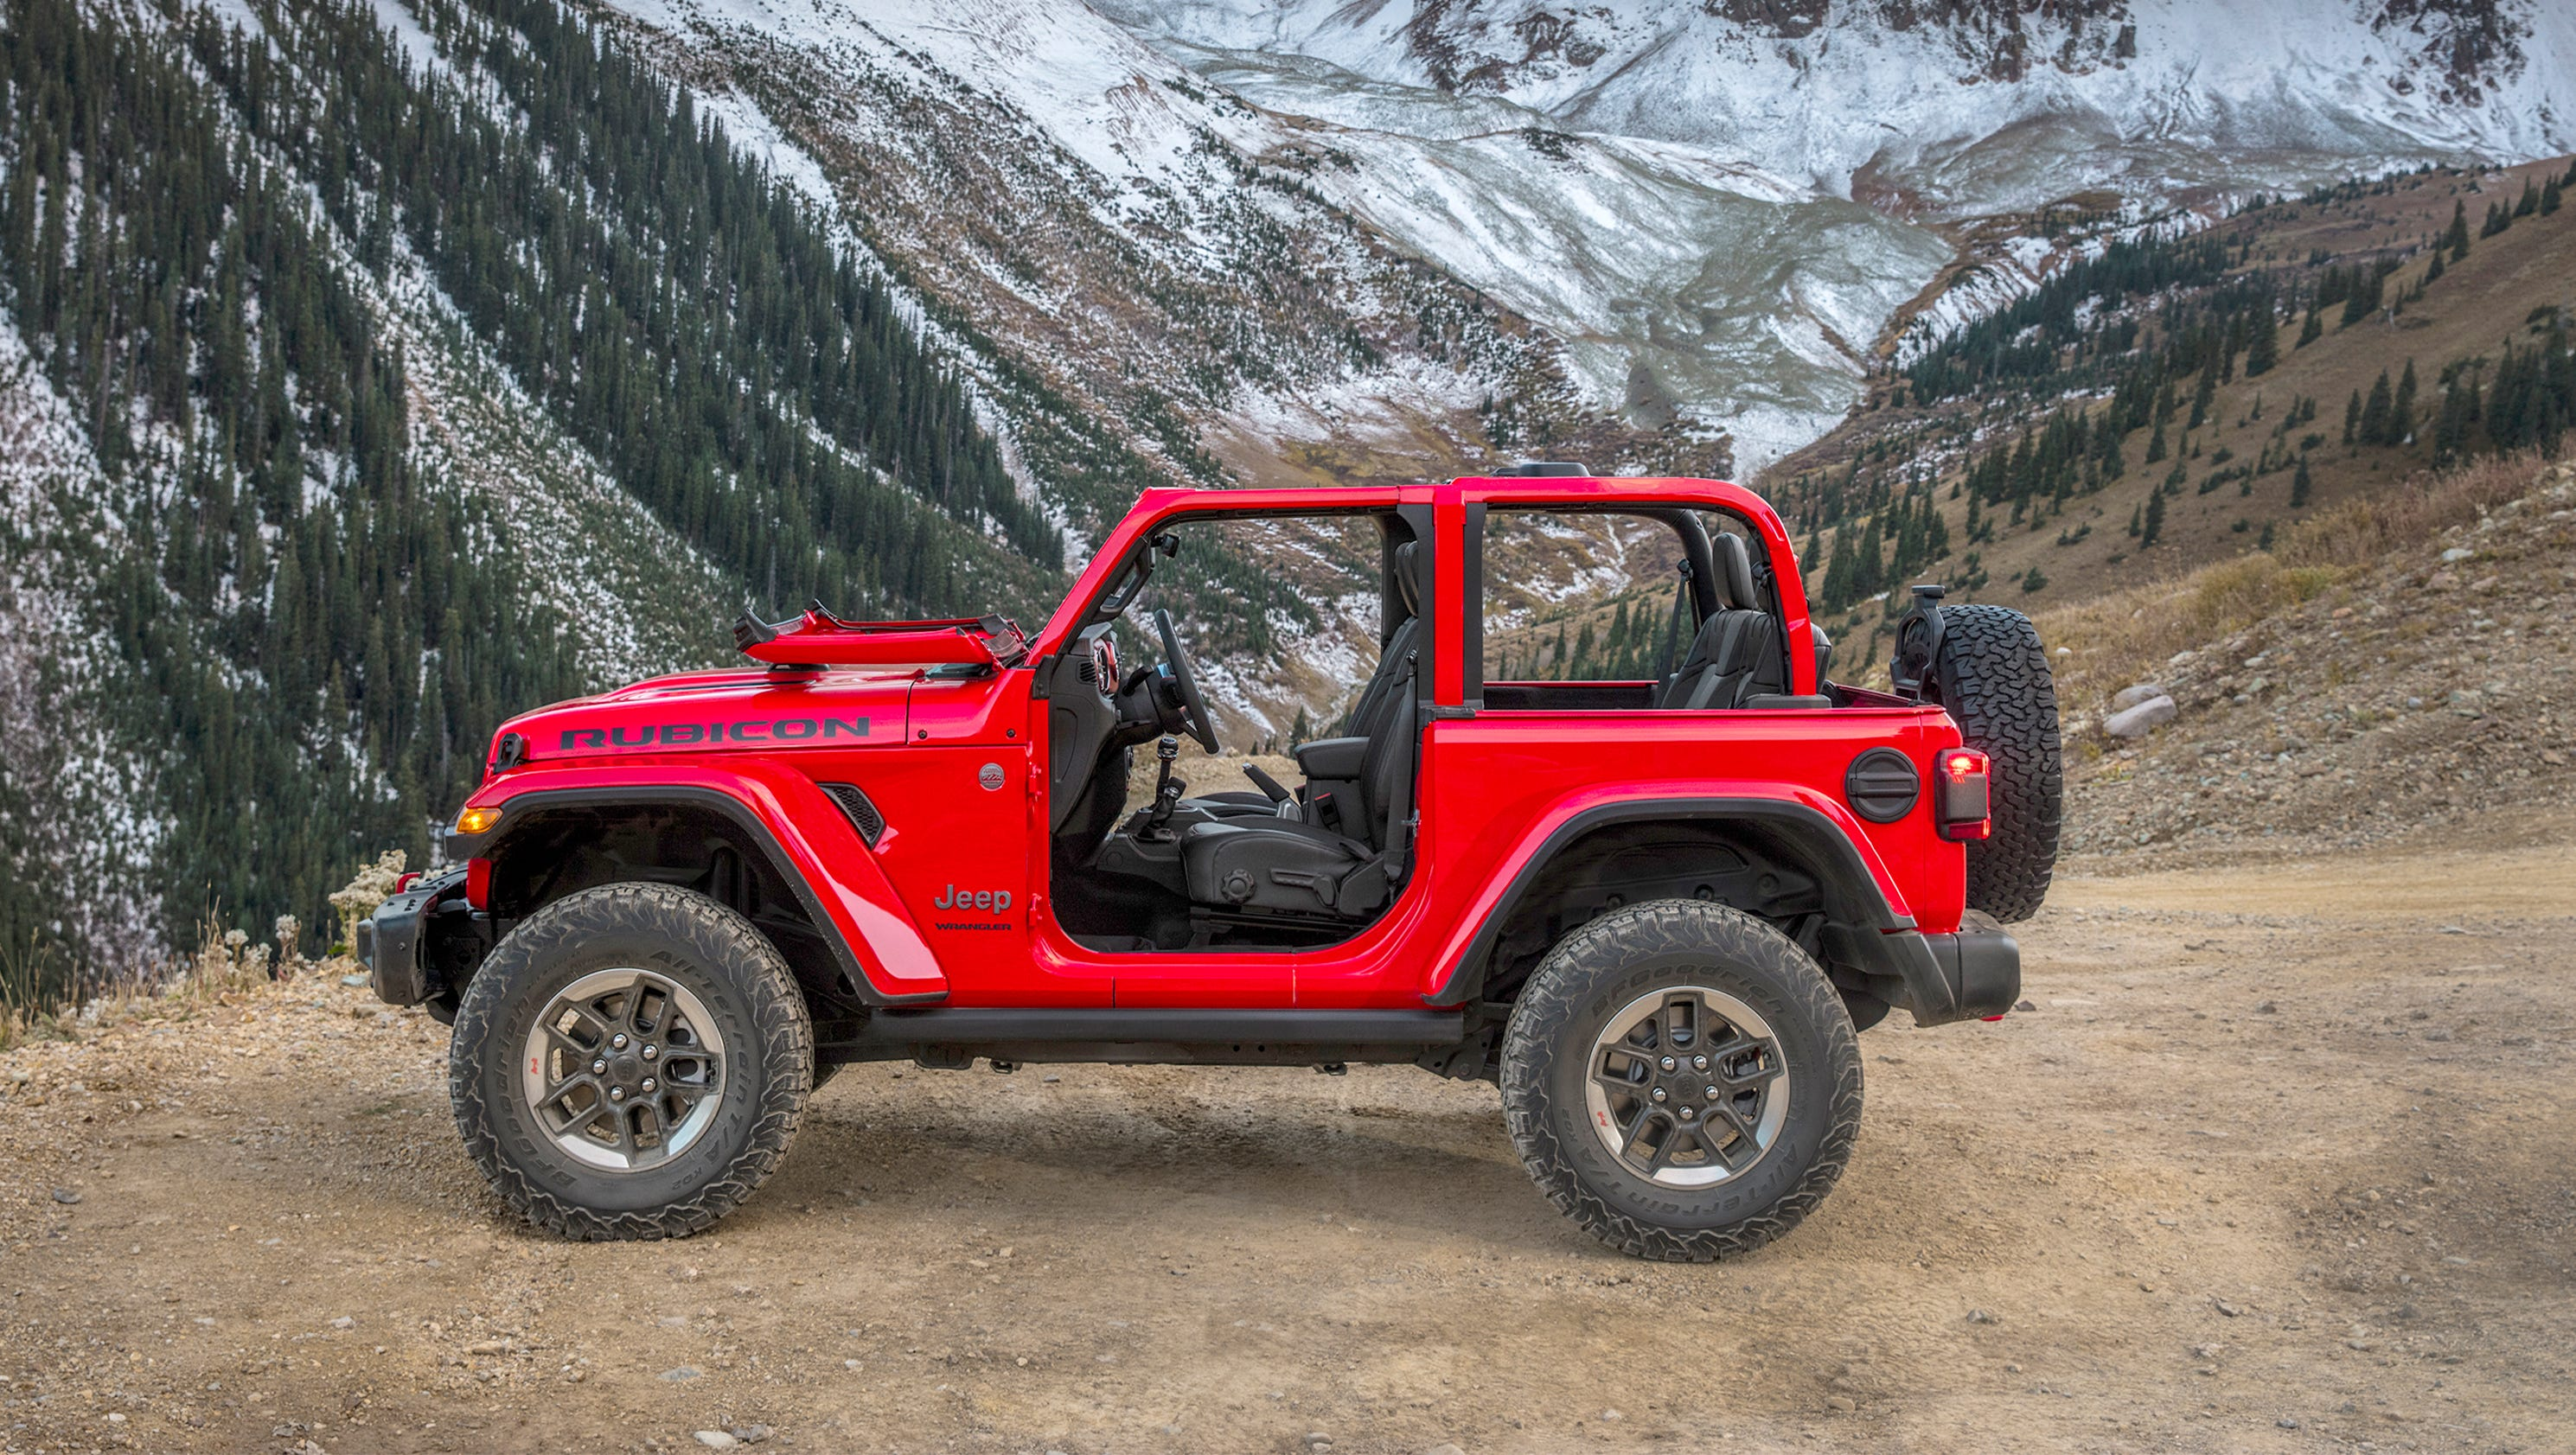 2018 jeep wrangler is coming and fiat chrysler needs it to shine. Black Bedroom Furniture Sets. Home Design Ideas